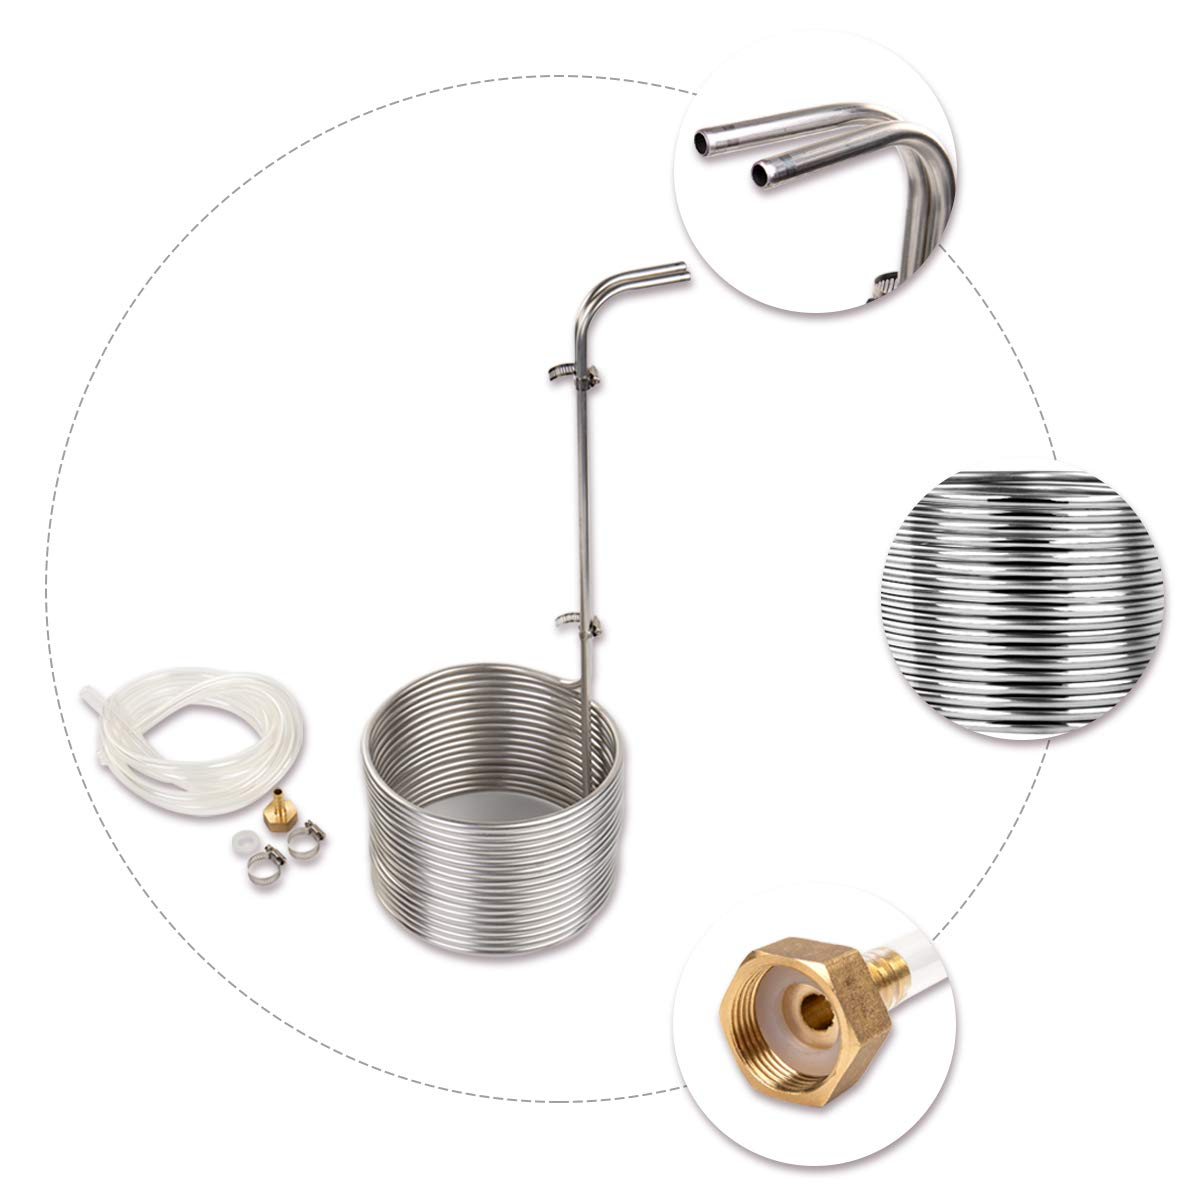 BACOENG Food Grade Super Efficient 5/16'' x 50' Stainless Steel Wort Chiller by BACOENG